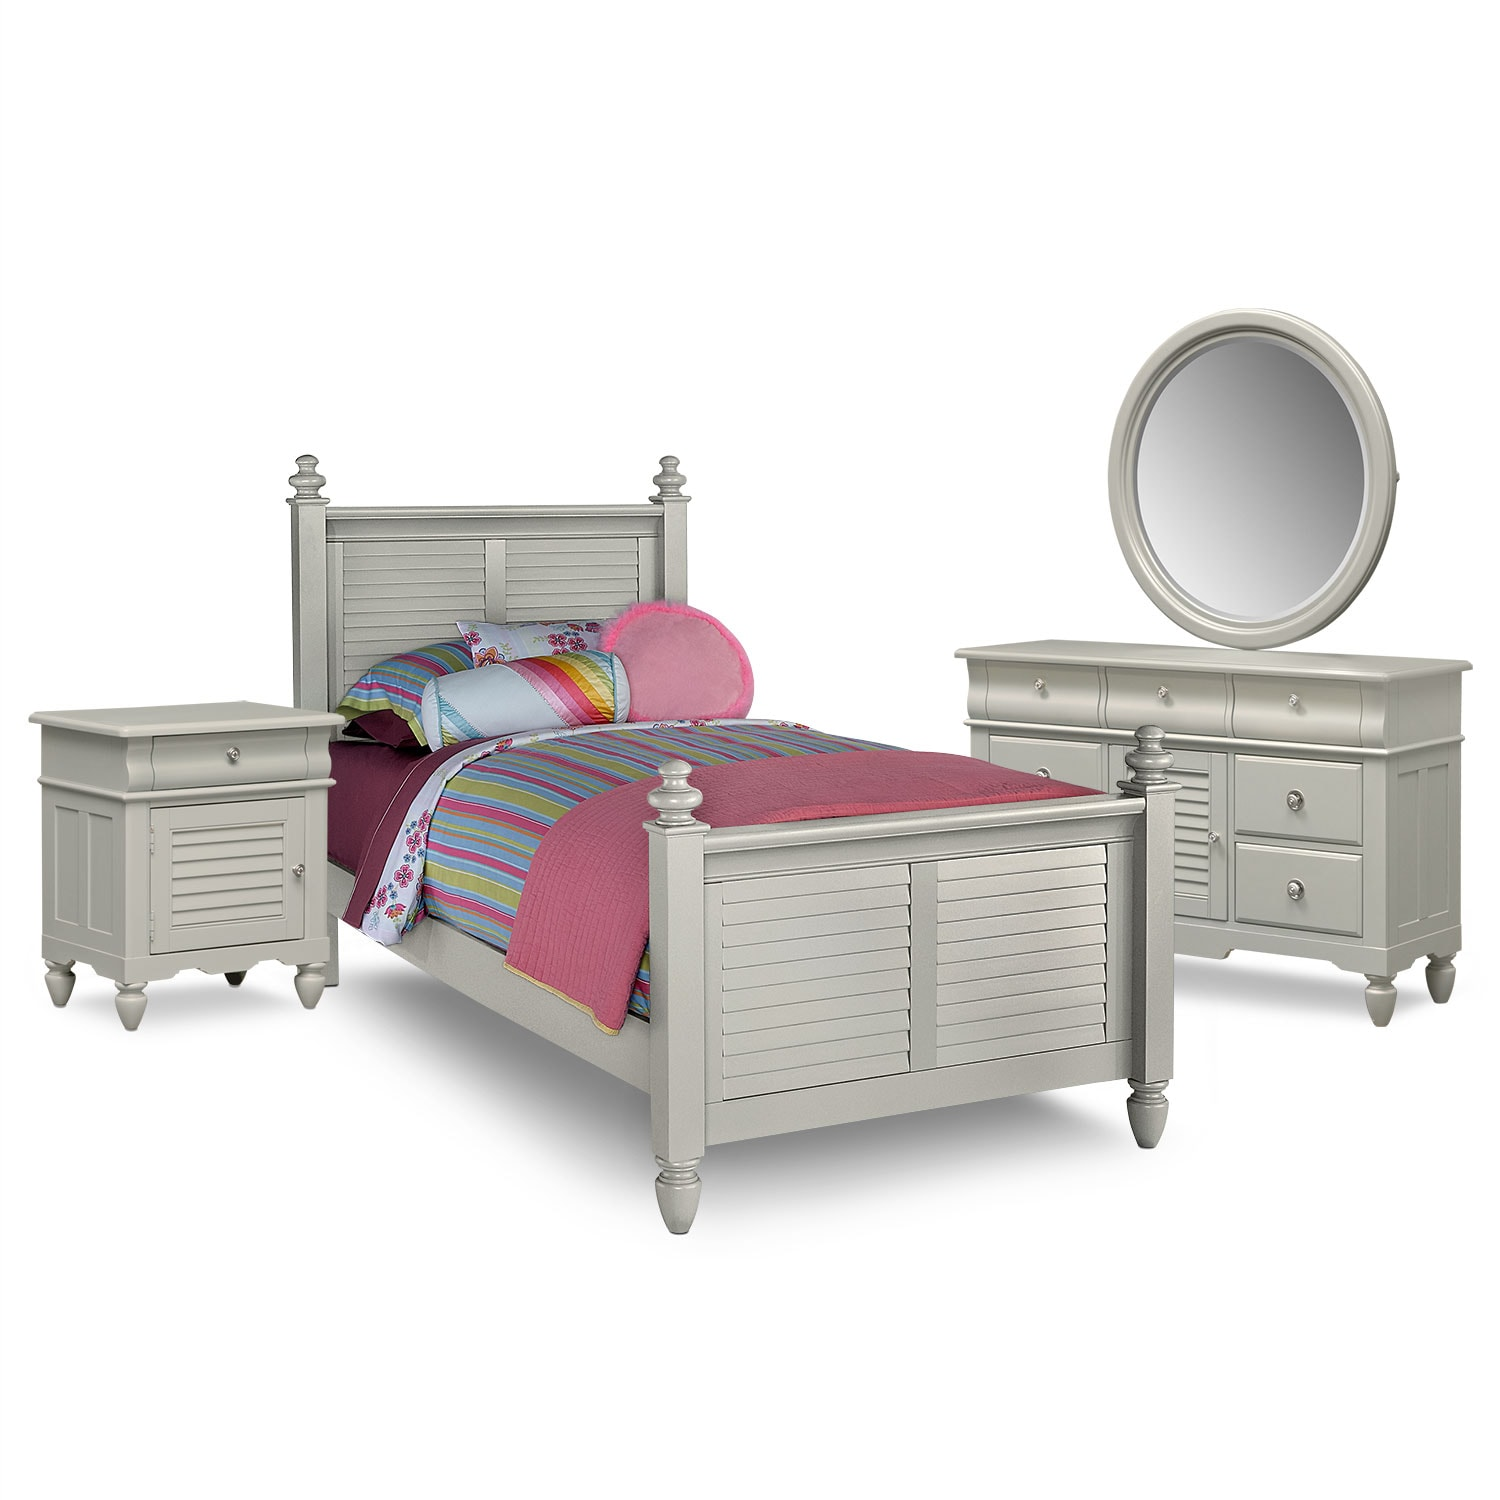 Seaside 6-Piece Twin Bedroom Set - Gray